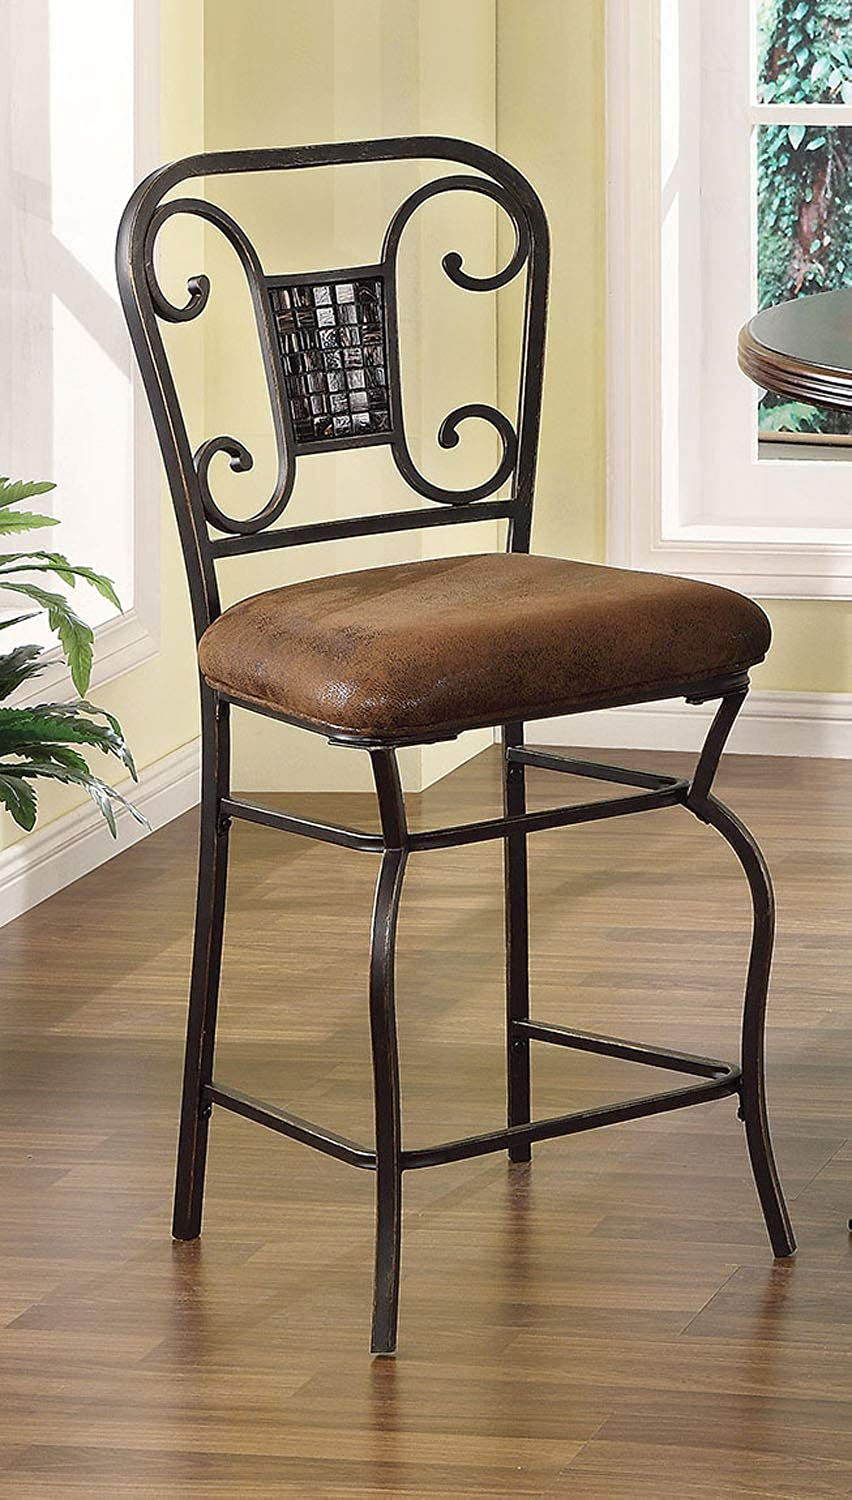 Home Roots Furniture Scrolled Pattern Design Counter Height Chair - Set of 2